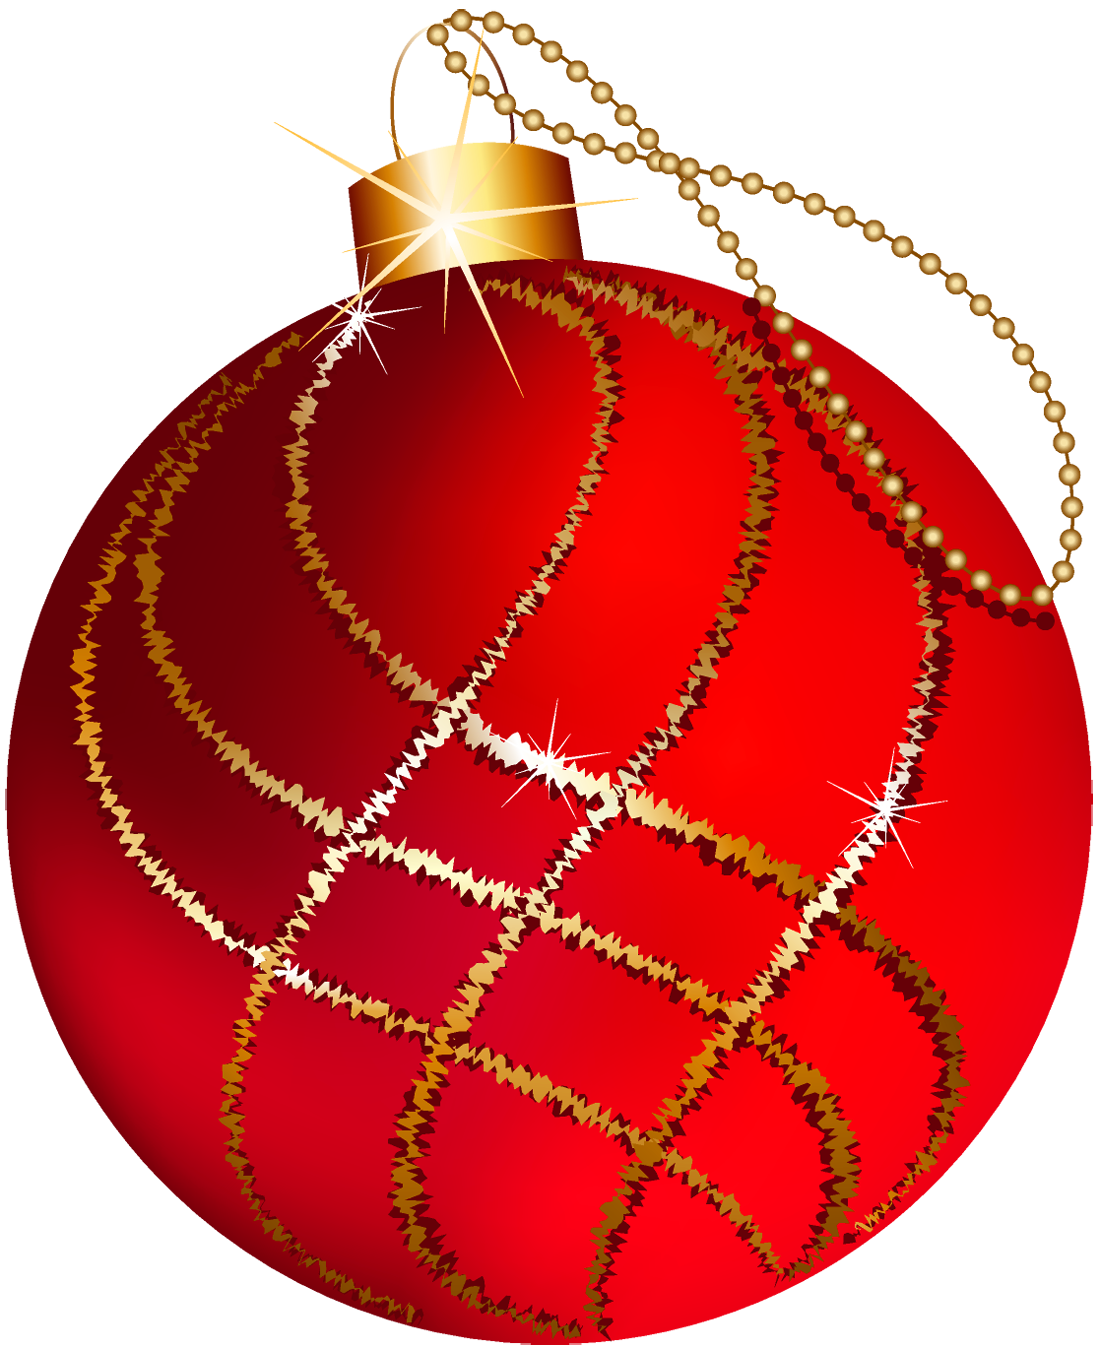 Red christmas ornament clipart clip art transparent download Transparent Christmas Large Red and Gold Ornament Clipart | Gallery ... clip art transparent download